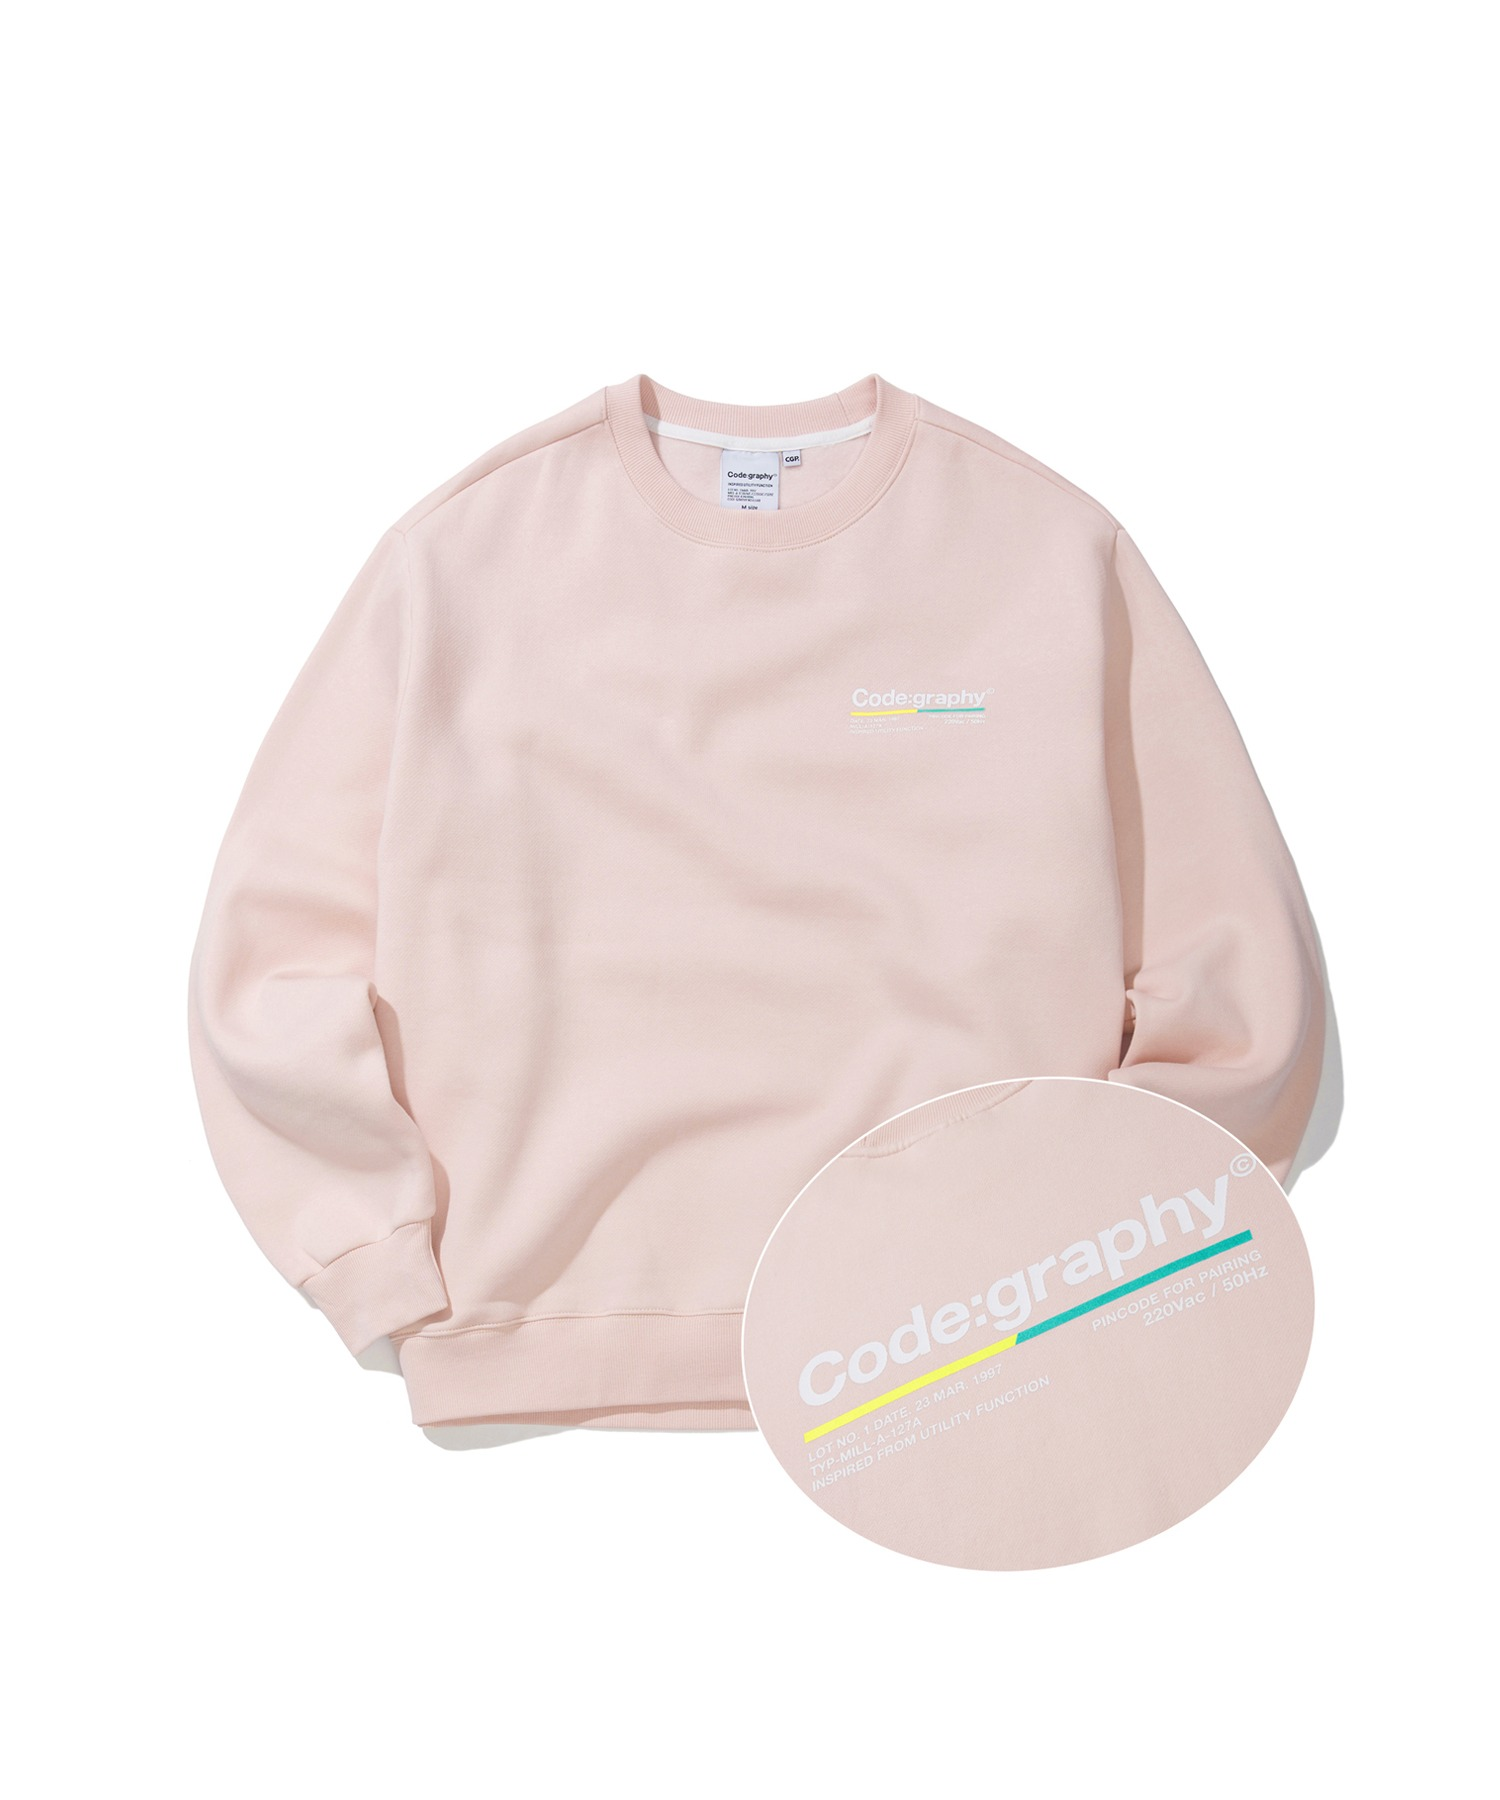 COLOR CHIP LOGO CREWNECK - PK